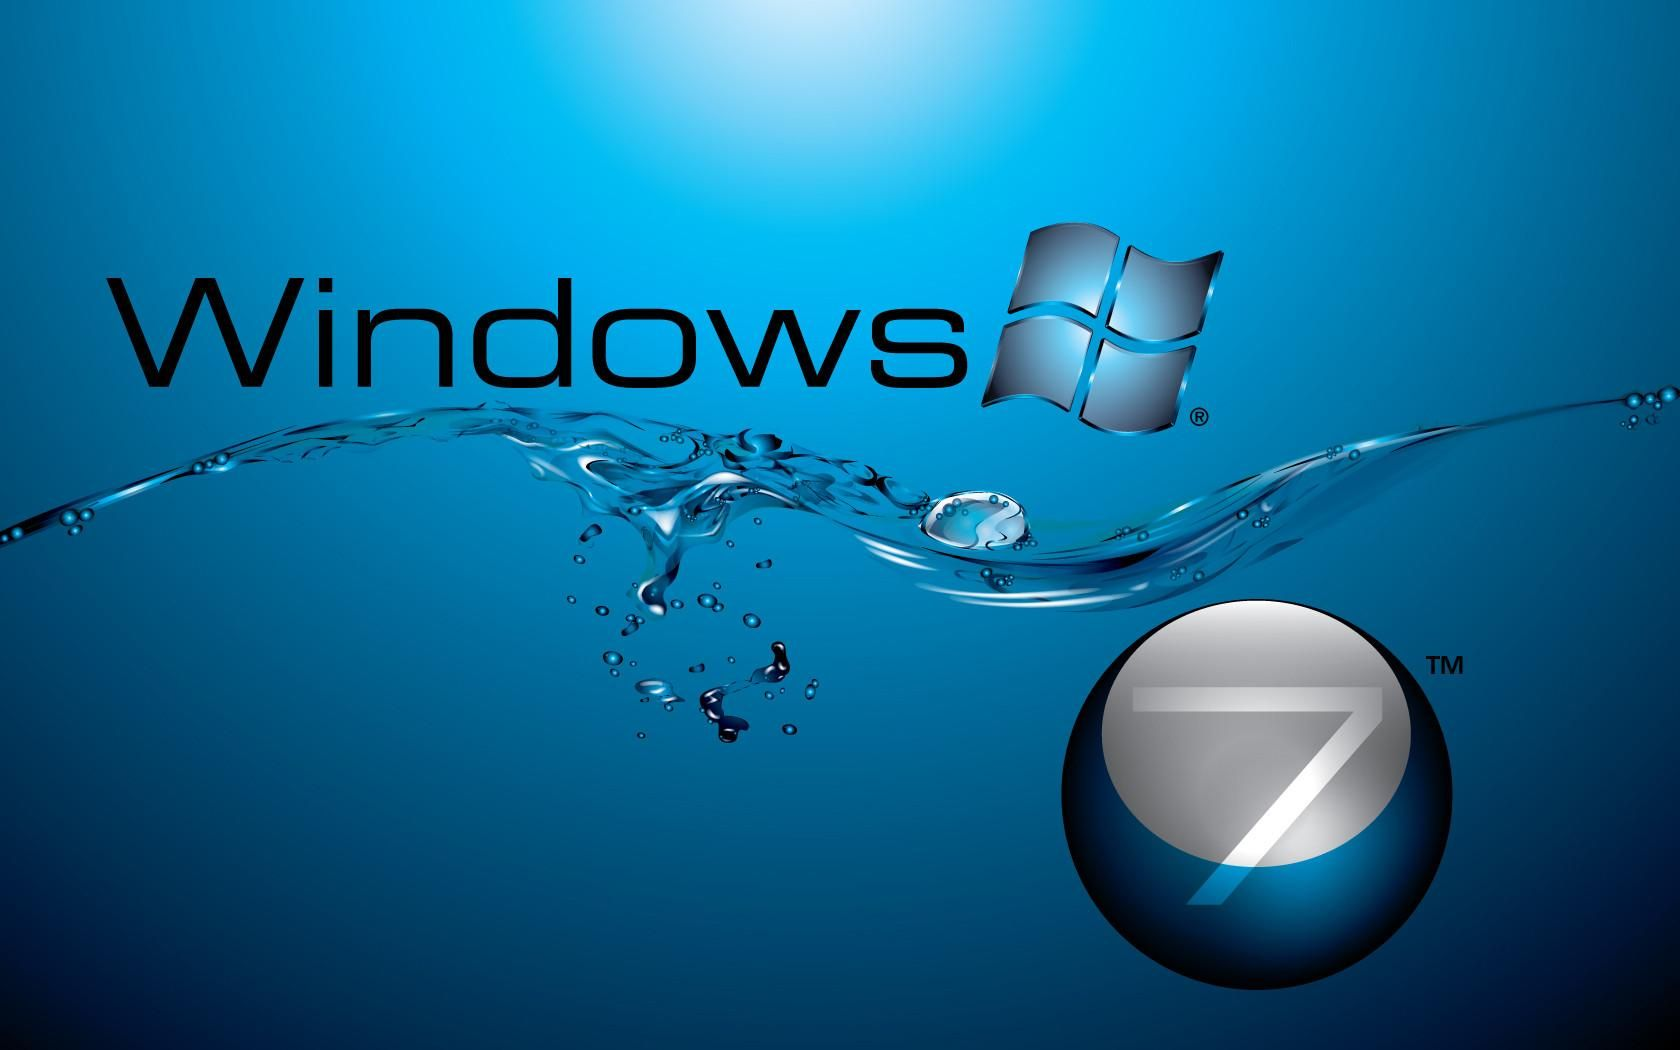 windows xp wallpapers free download love wallpaper